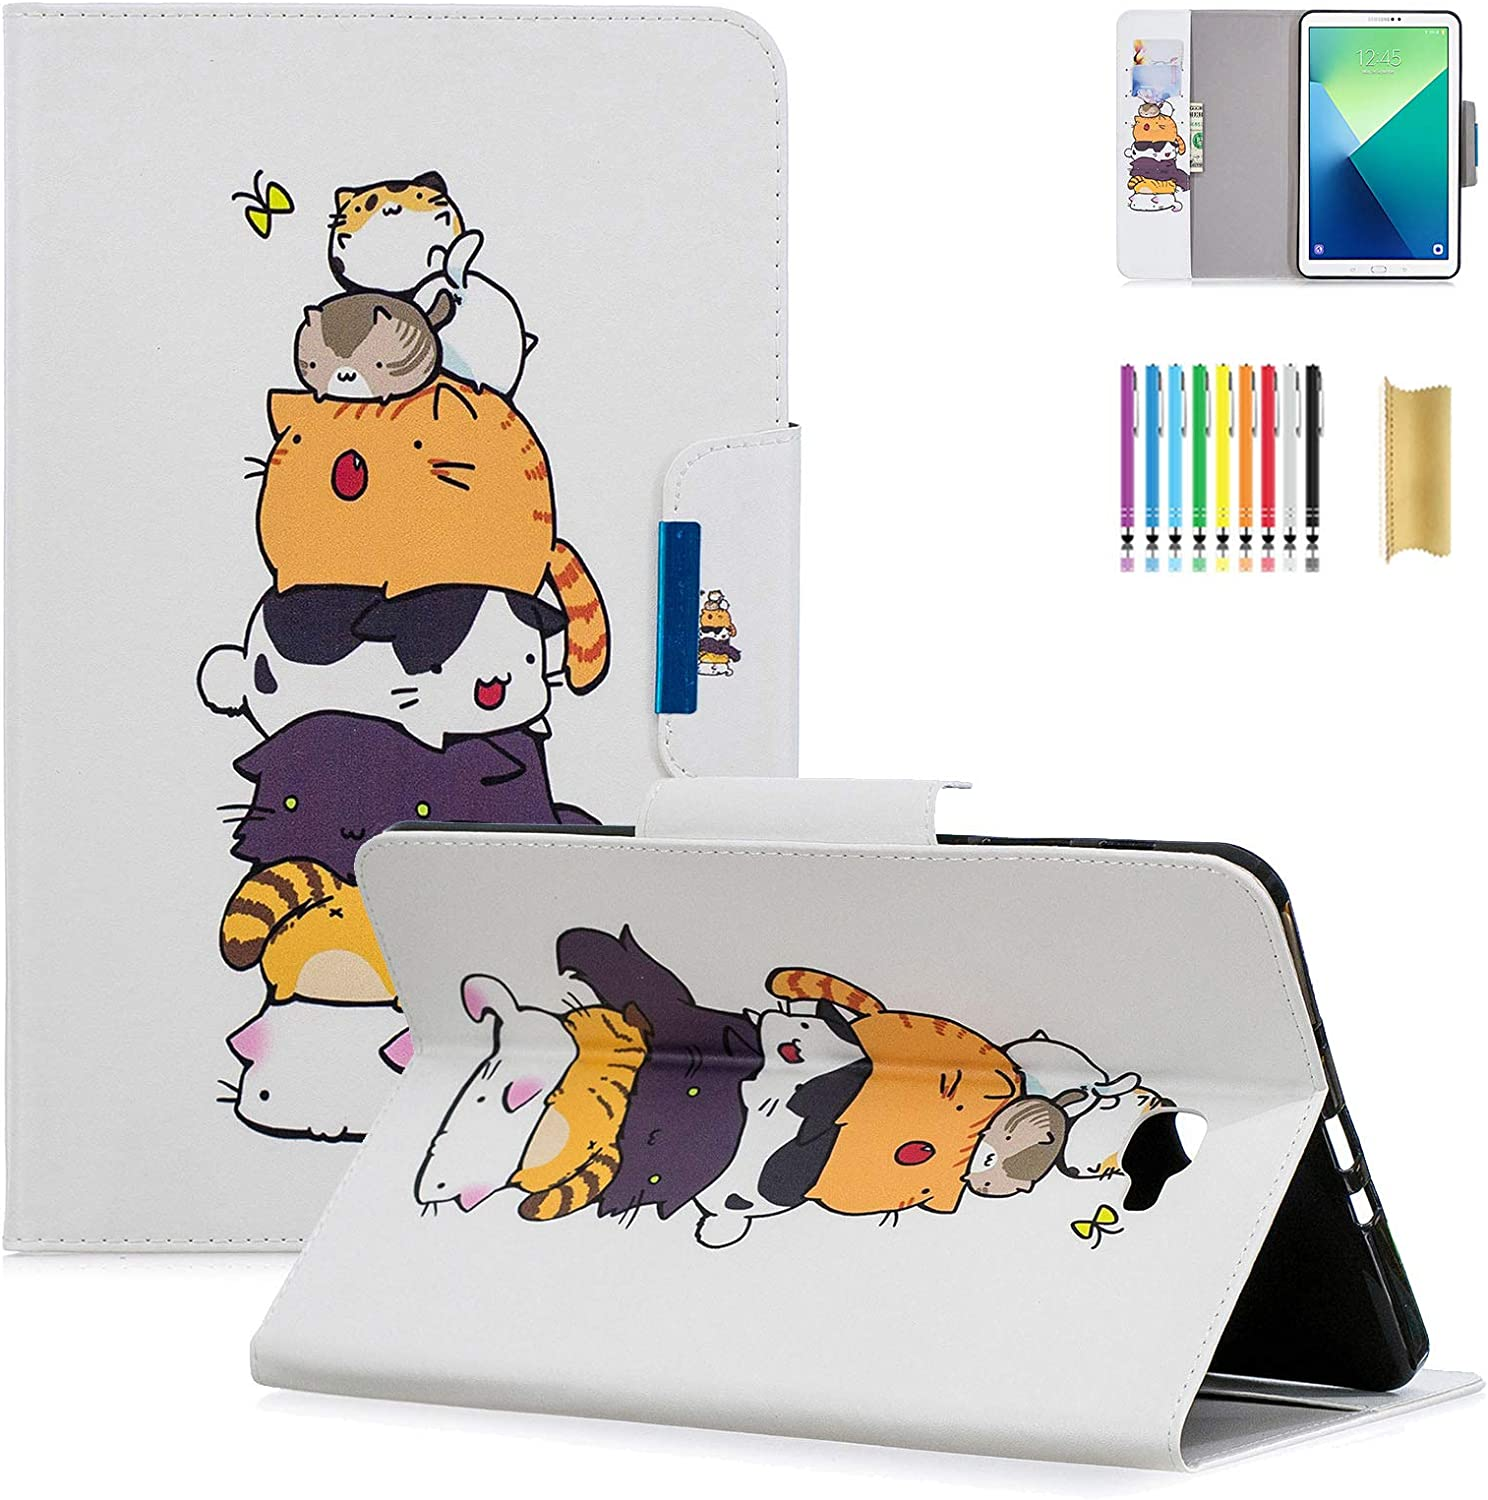 "Dteck for Samsung Galaxy Tab A 10.1 SM-T580 Case 2016 - PU Leather Stand Folio Smart Wake/Sleep Case Samsung for Galaxy Tab A 10.1"" Tablet SM-T580 T585 T587 (NO S Pen Version), Cats Family"